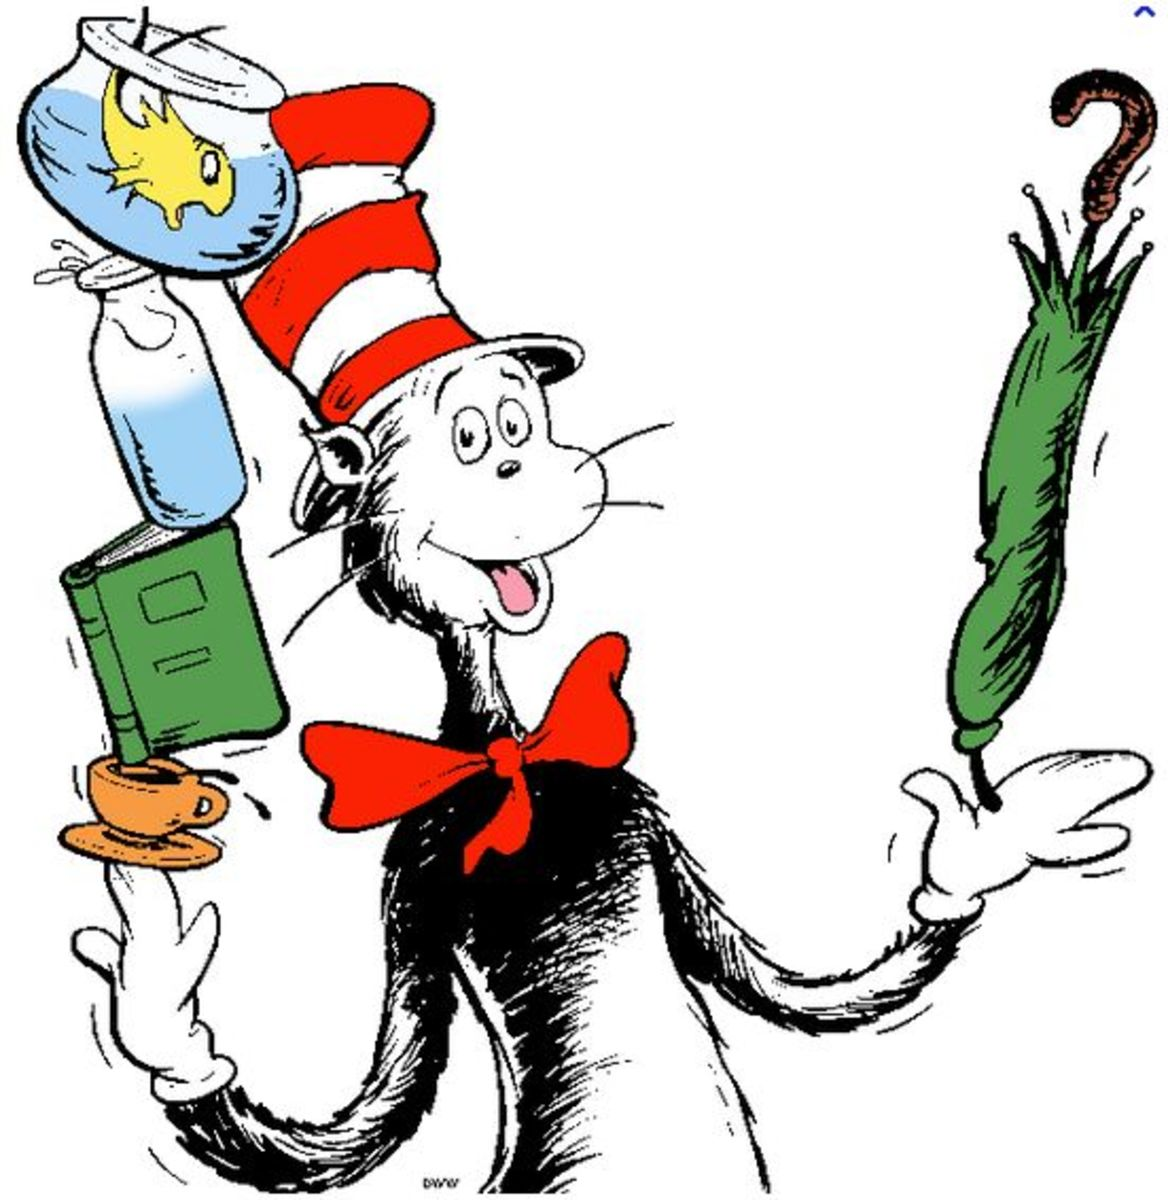 Dr. Seuss' iconic character, The Cat in the Hat.